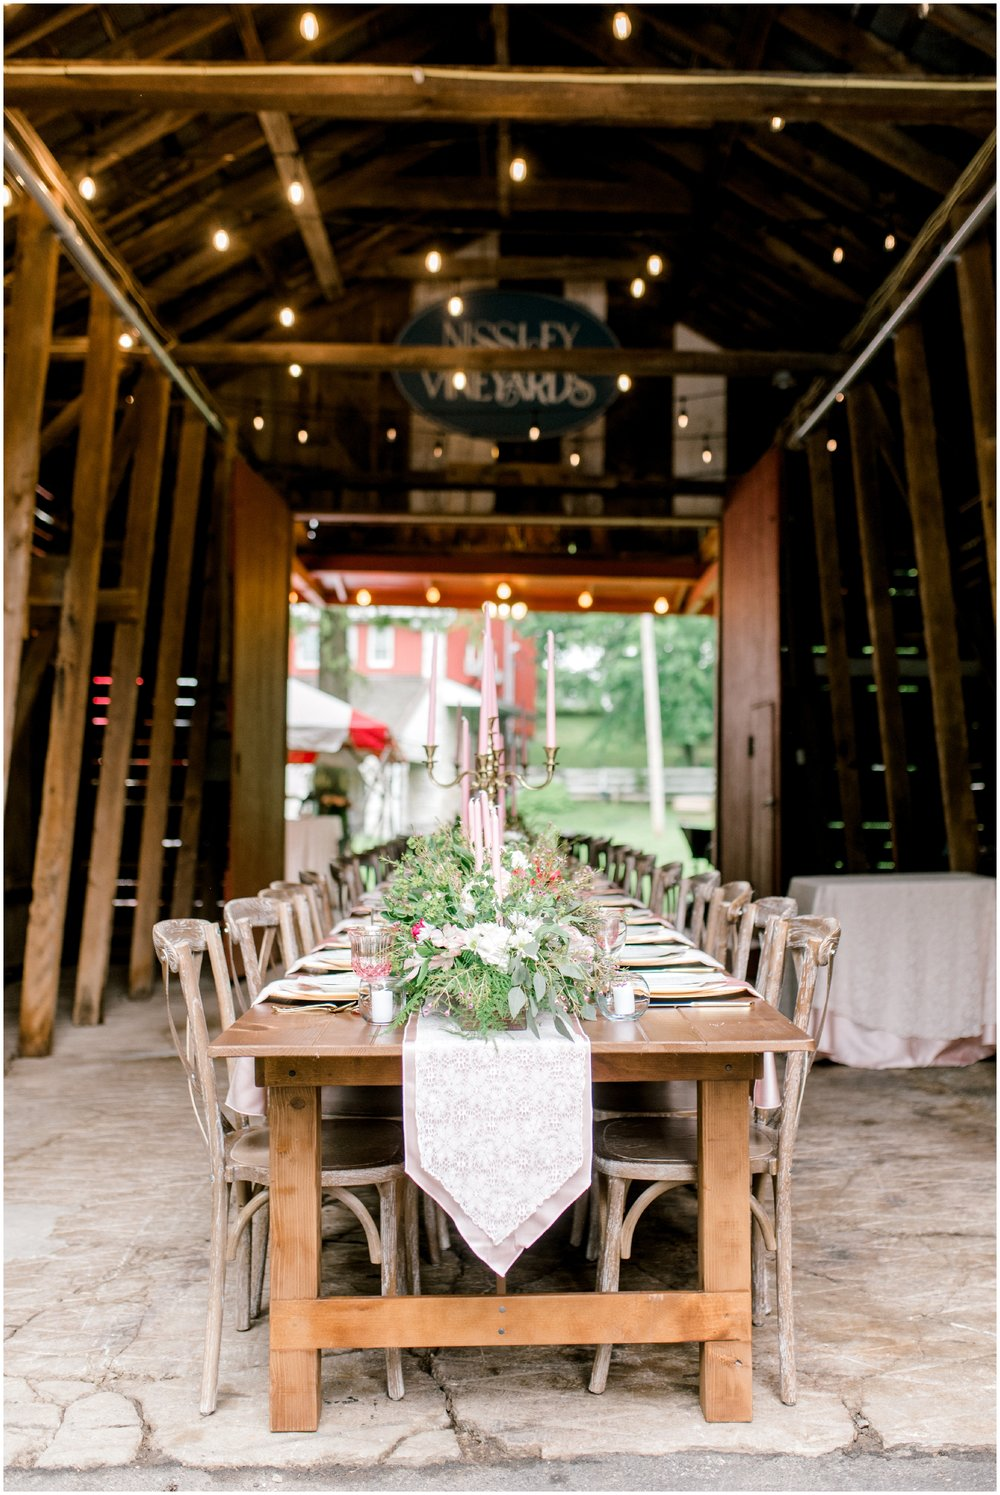 Spring Winery Bridal Shower at Nissley Vineyards in Lancaster County, PA - Krista Brackin Photography_0014.jpg